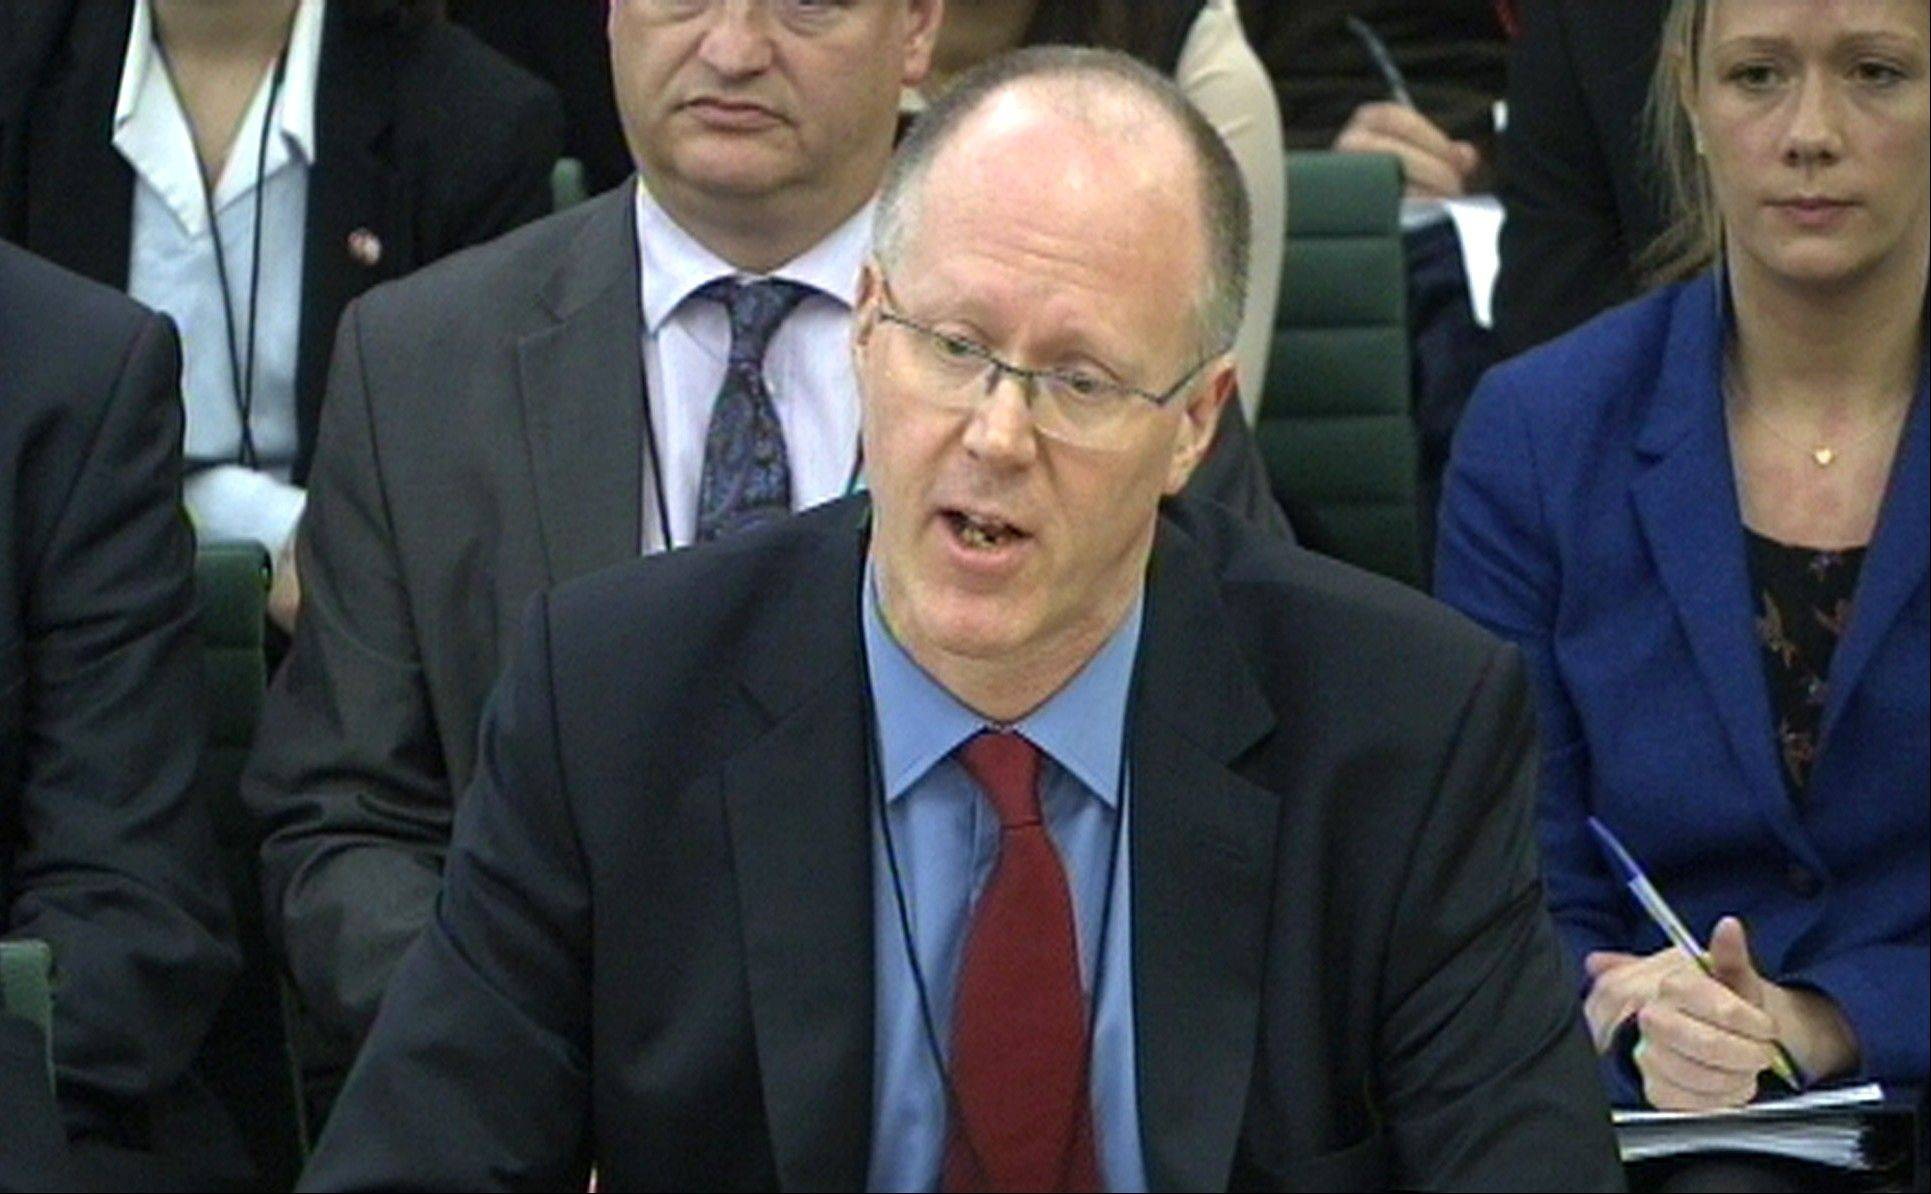 BBC Director General George Entwistle gives evidence to the Culture, Media and Sport select committee in the House of Commons, London, Tuesday Oct. 23, 2012. The BBC chief says allegations about decades of sexual abuse by its longtime TV host Jimmy Savile, and the broadcaster�s failure to stop him, constitute a �very grave� crisis for the venerable organization. Entwistle told British lawmakers on Tuesday that it is too early to say whether sexual abuse was endemic within Britain�s publicly funded national broadcaster in previous decades.